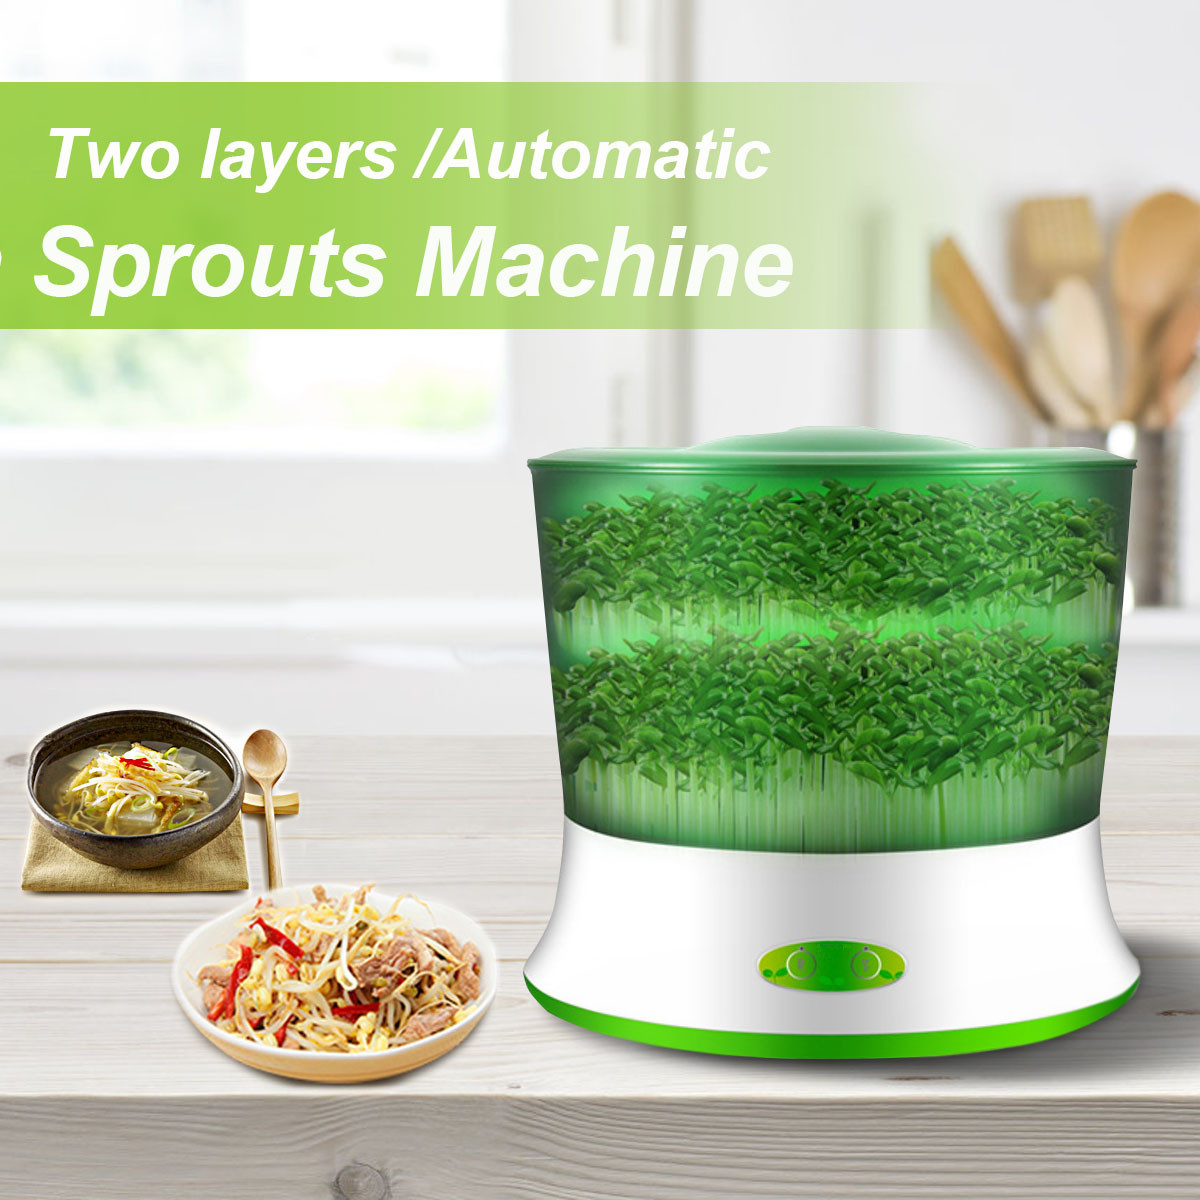 цена 220V 20W Automatic Bean Sprout Machine 2 Layer Multifunctional Homemade Sprout Bud Machine Intelligent Microcomputer Control